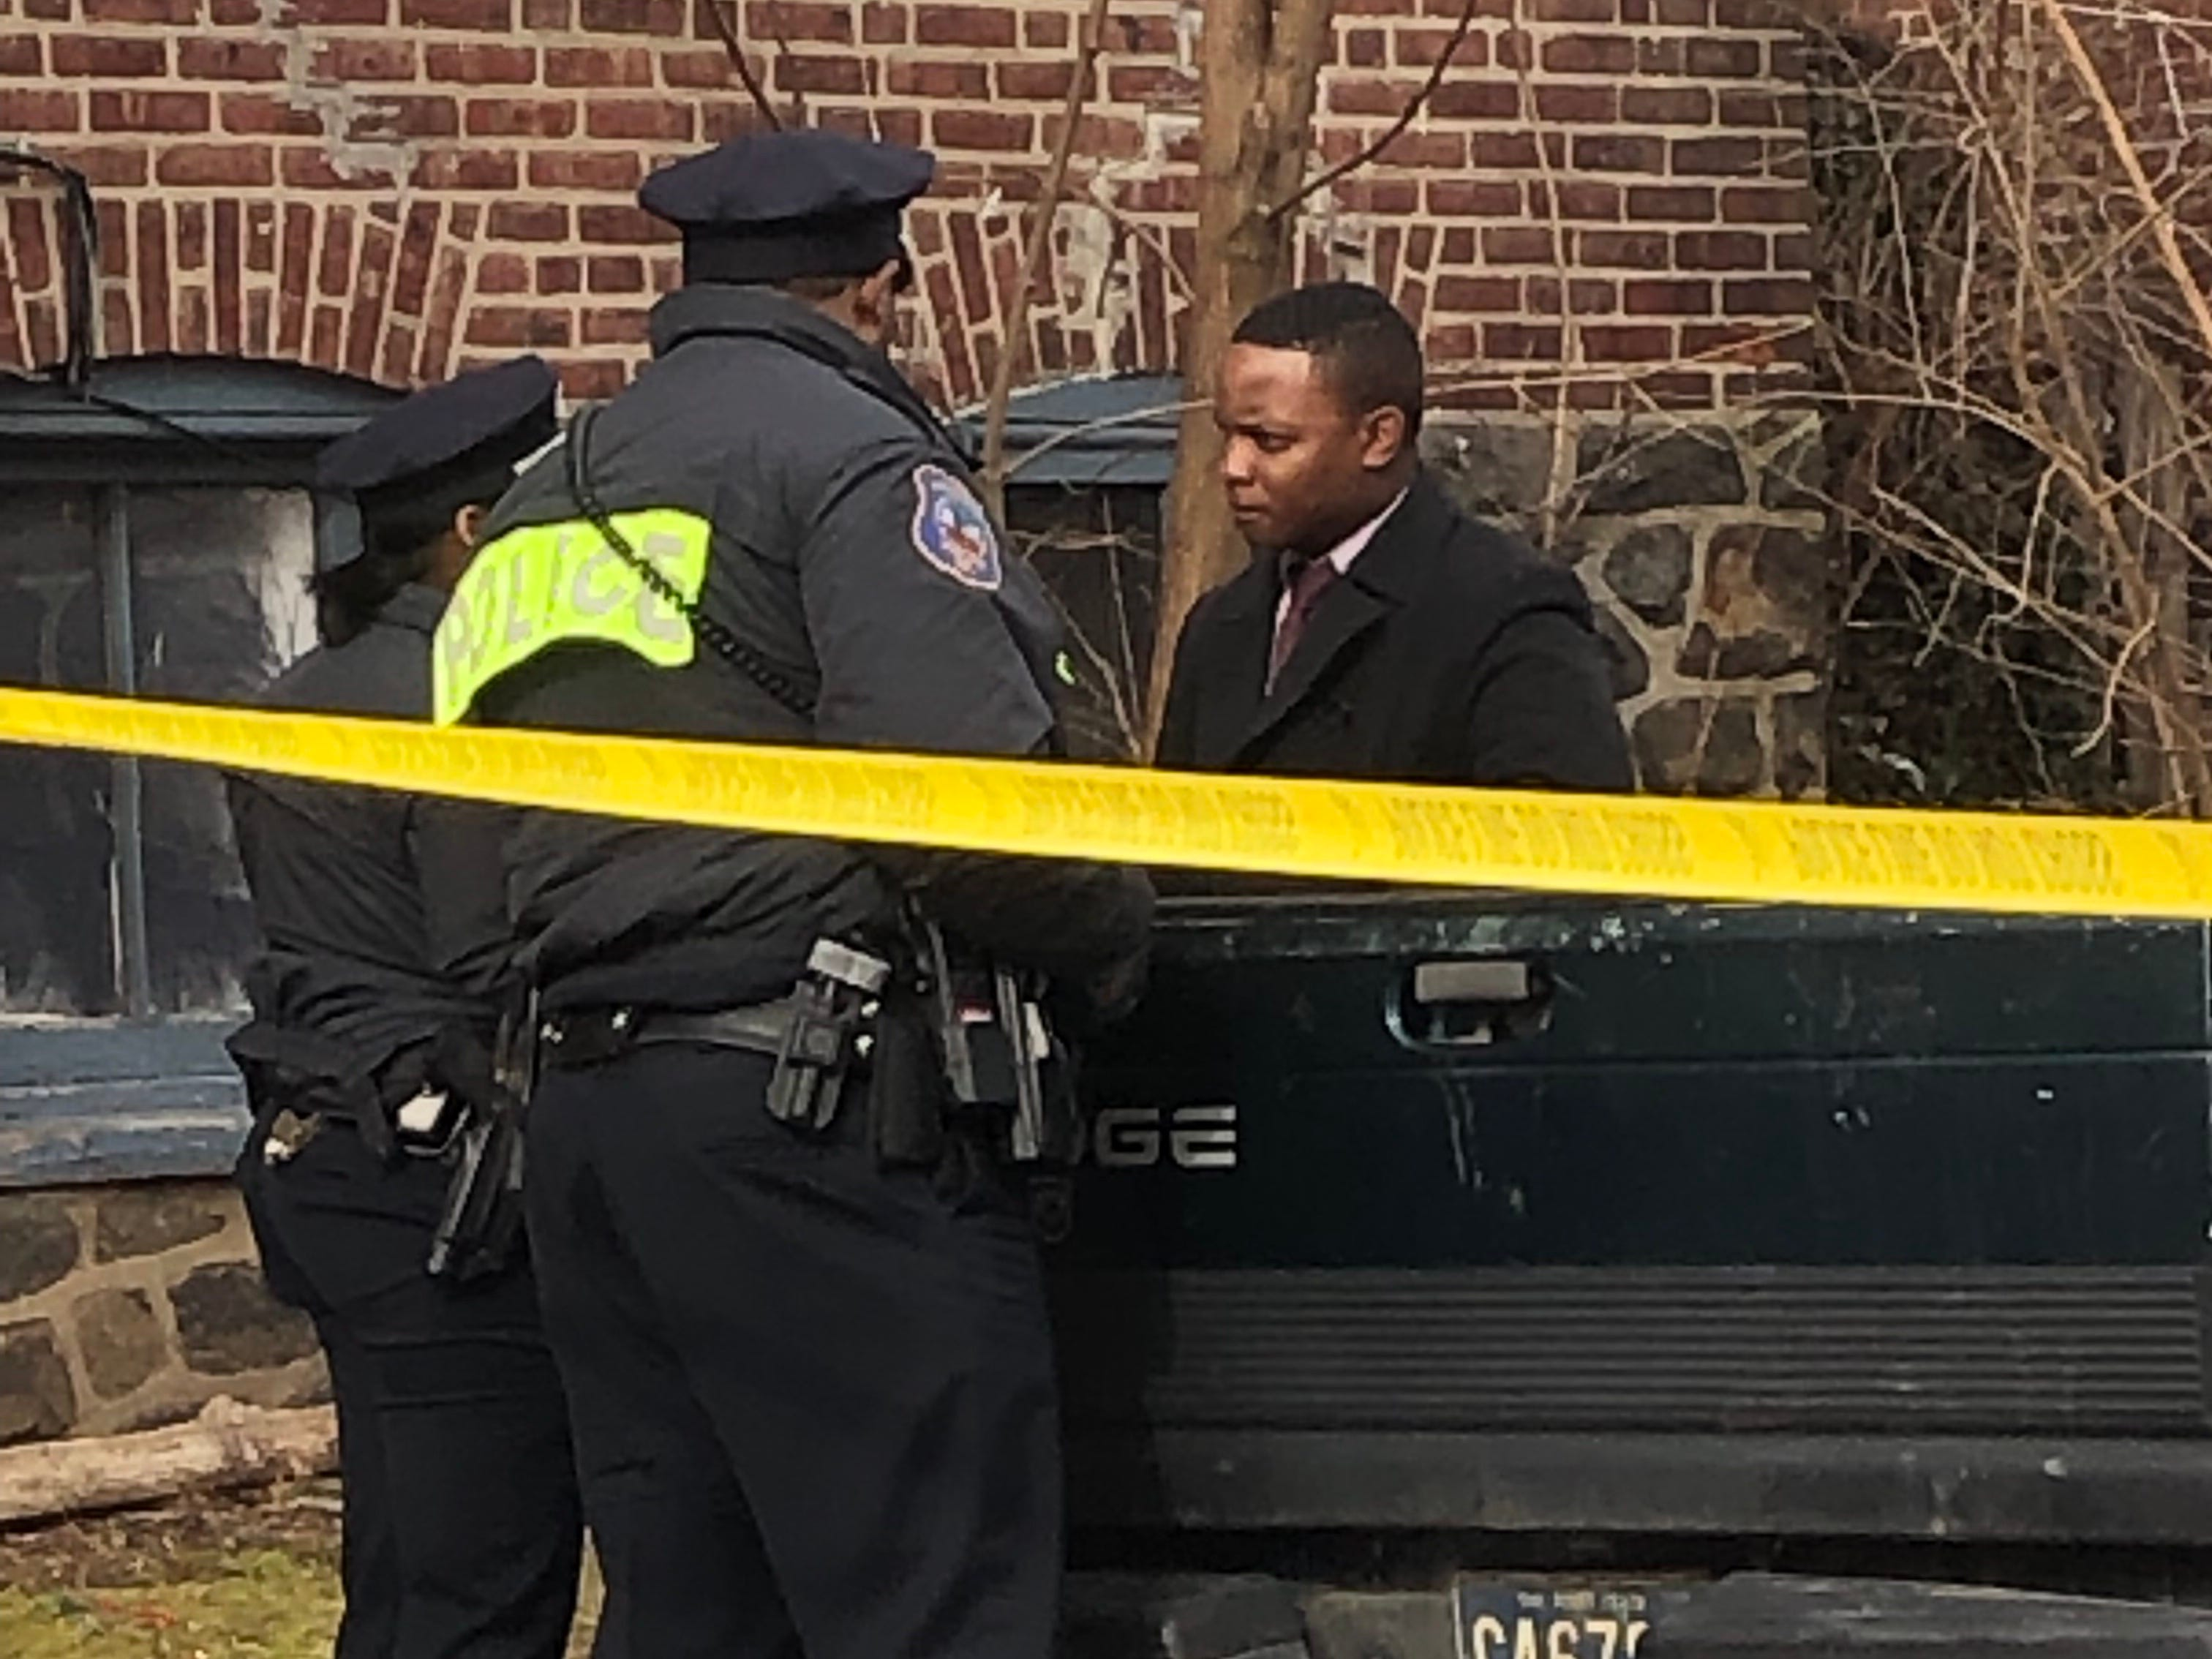 Wilmington police are on the scene of a double homicide Monday, March 11, 2019.